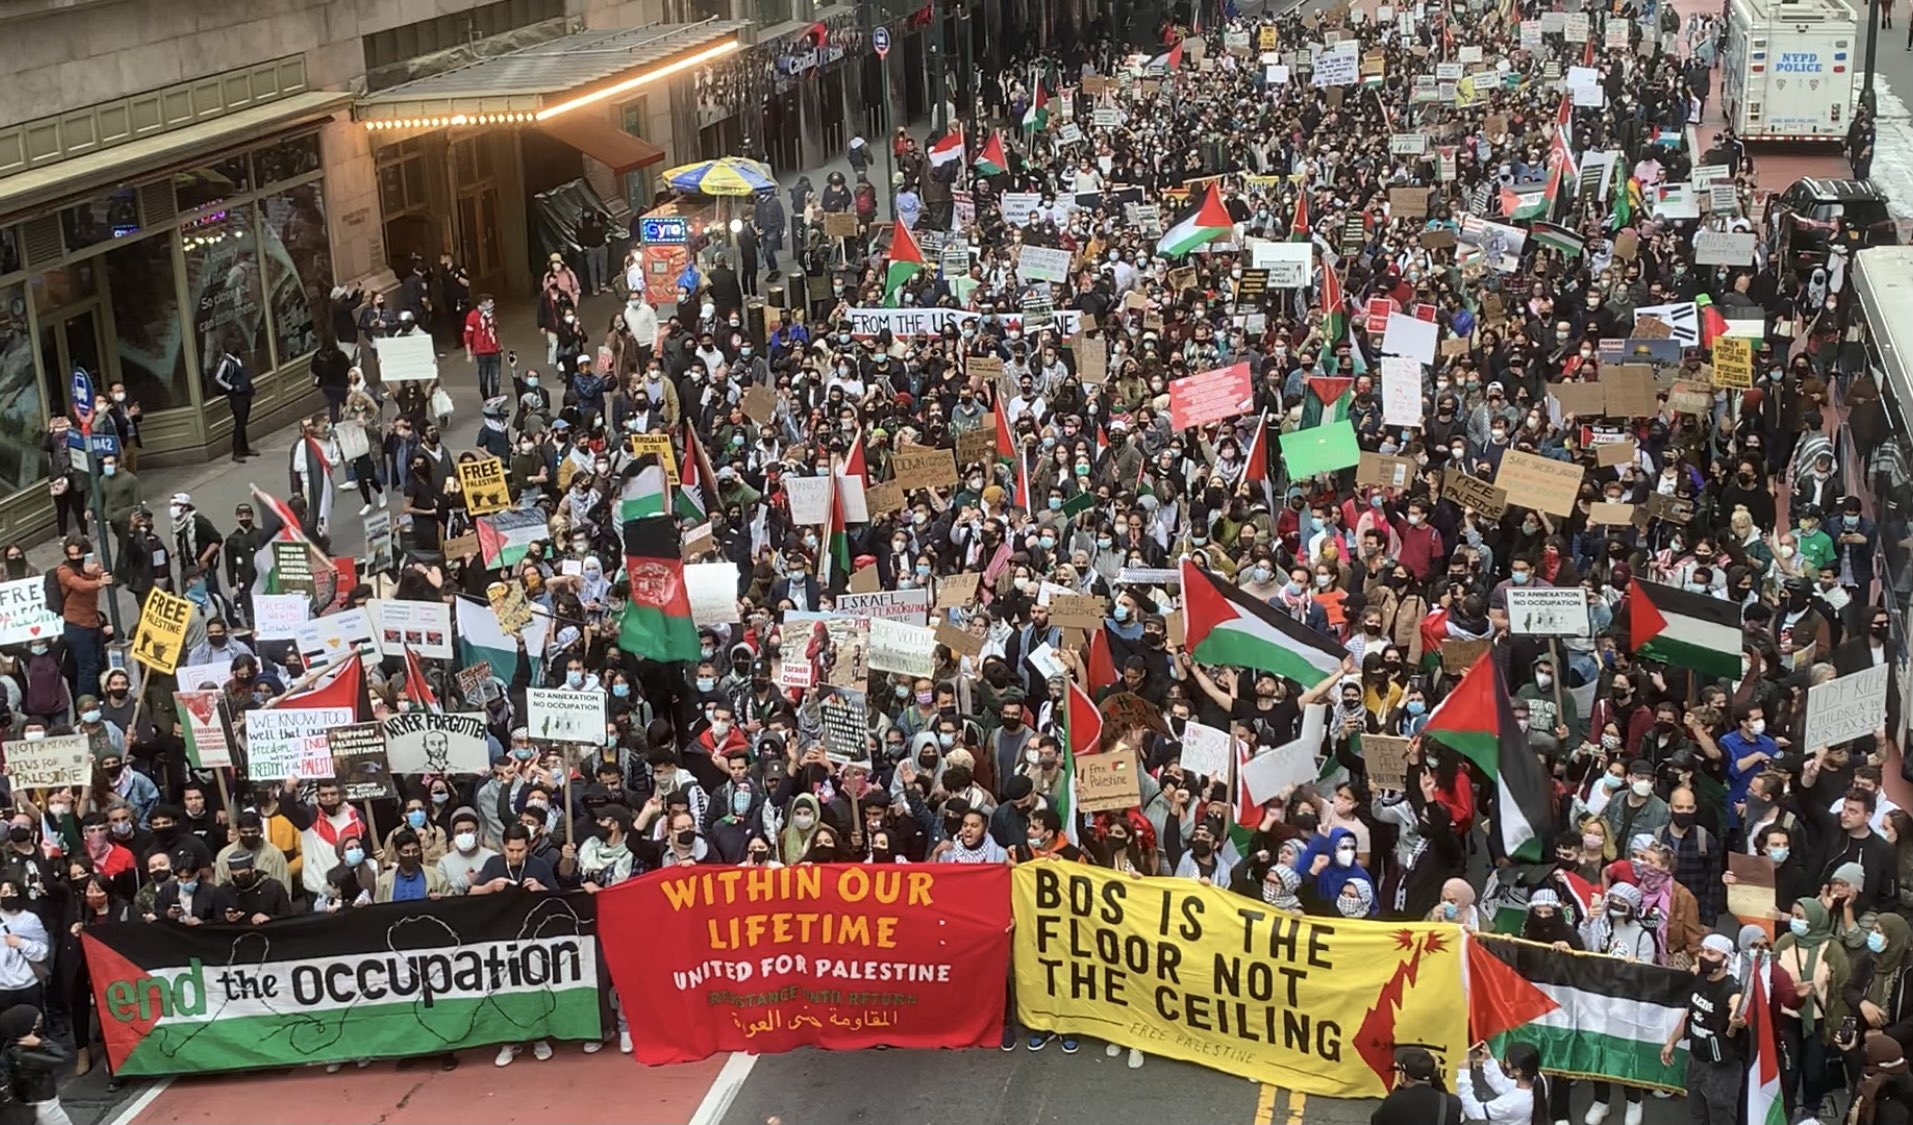 Thousands in New York Protest in Solidarity With Palestine